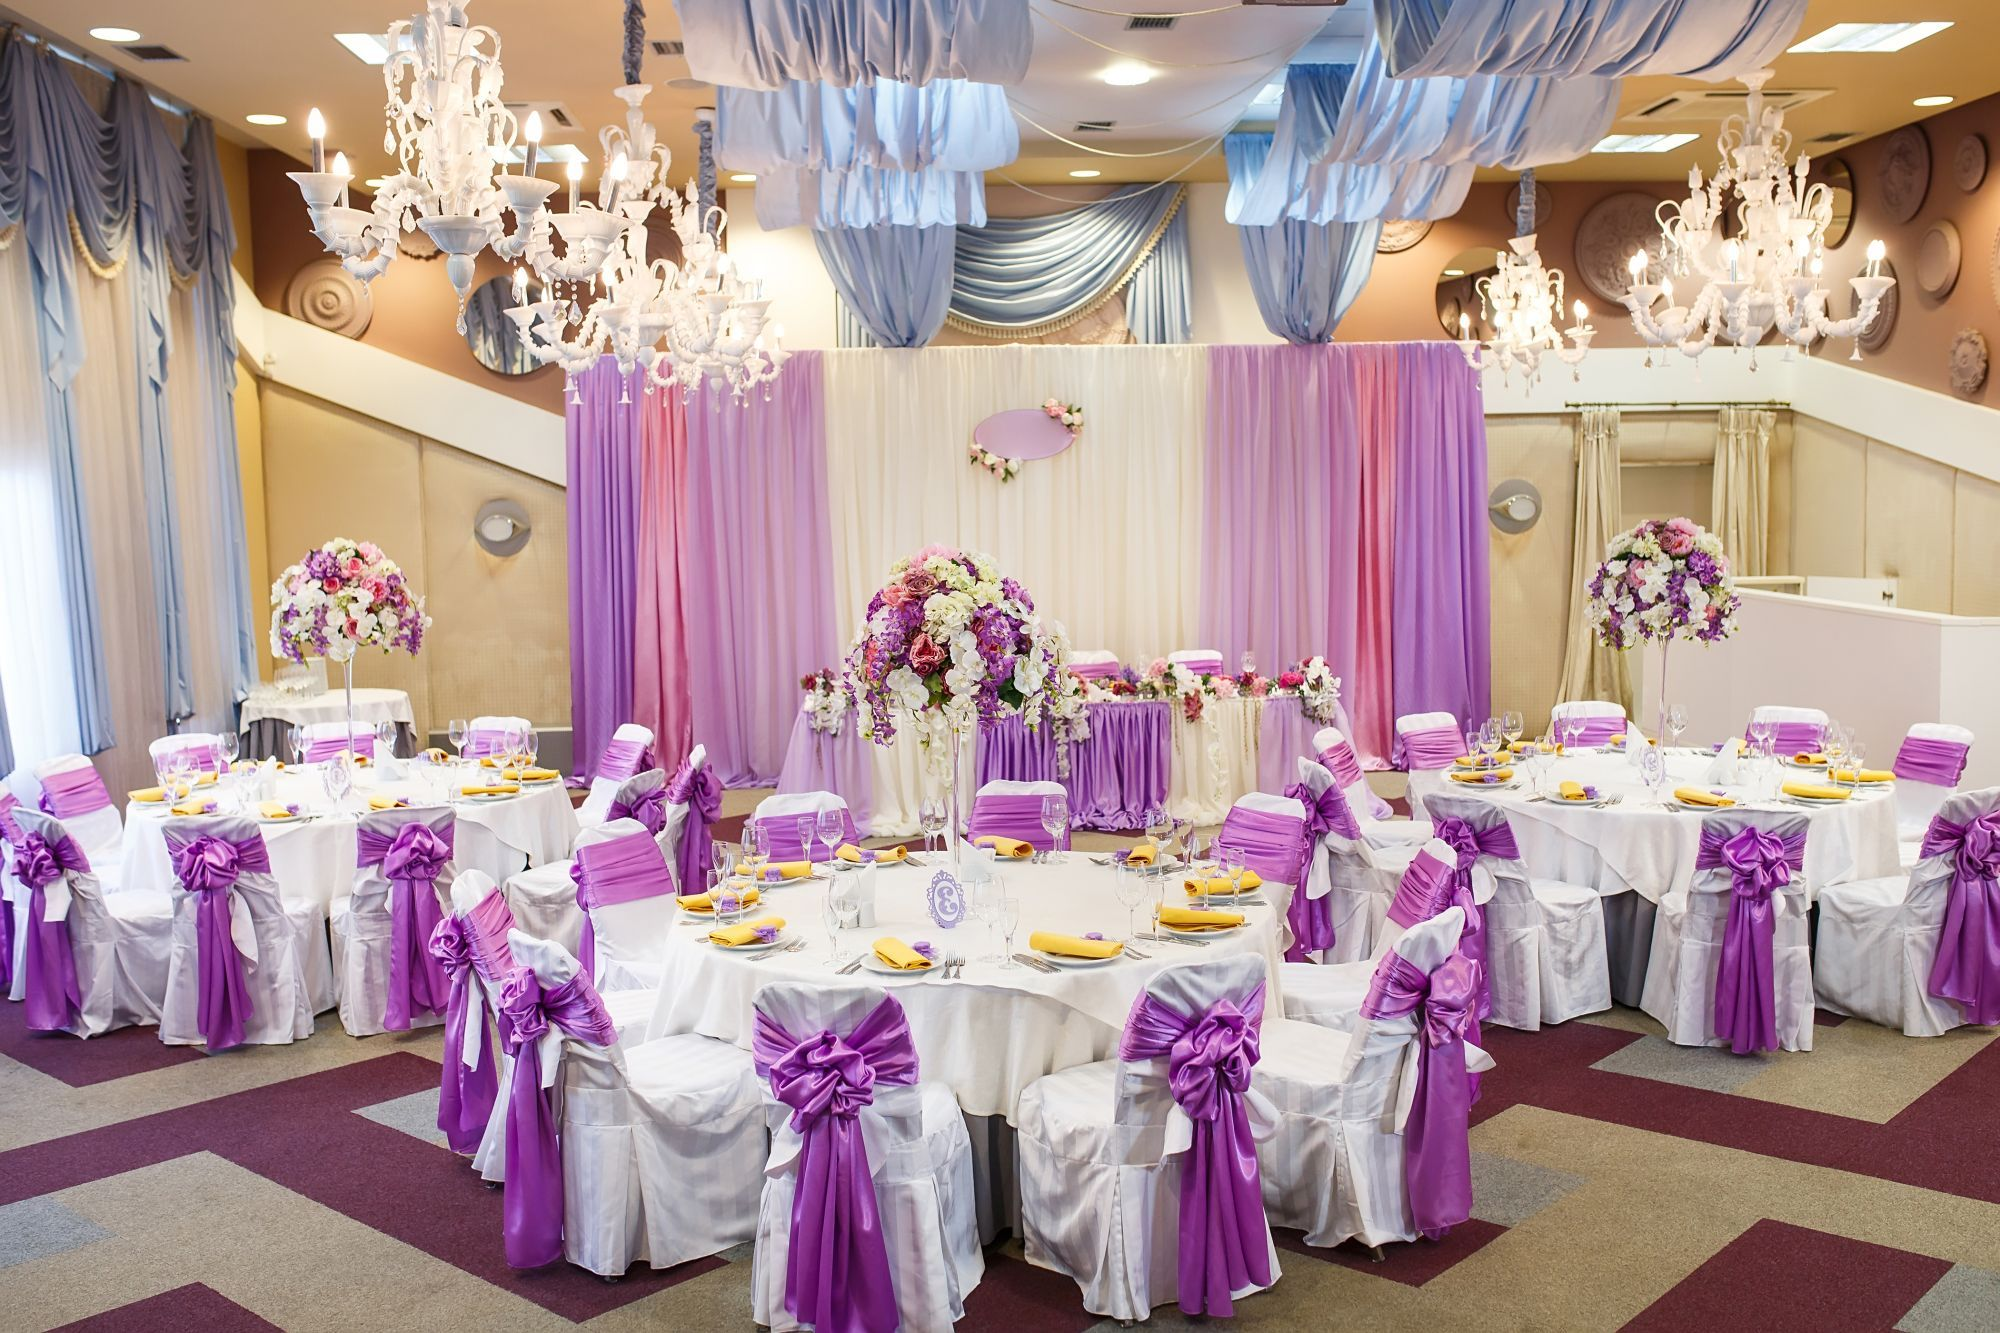 banquet room with chair covers, tablecloths & centerpieces